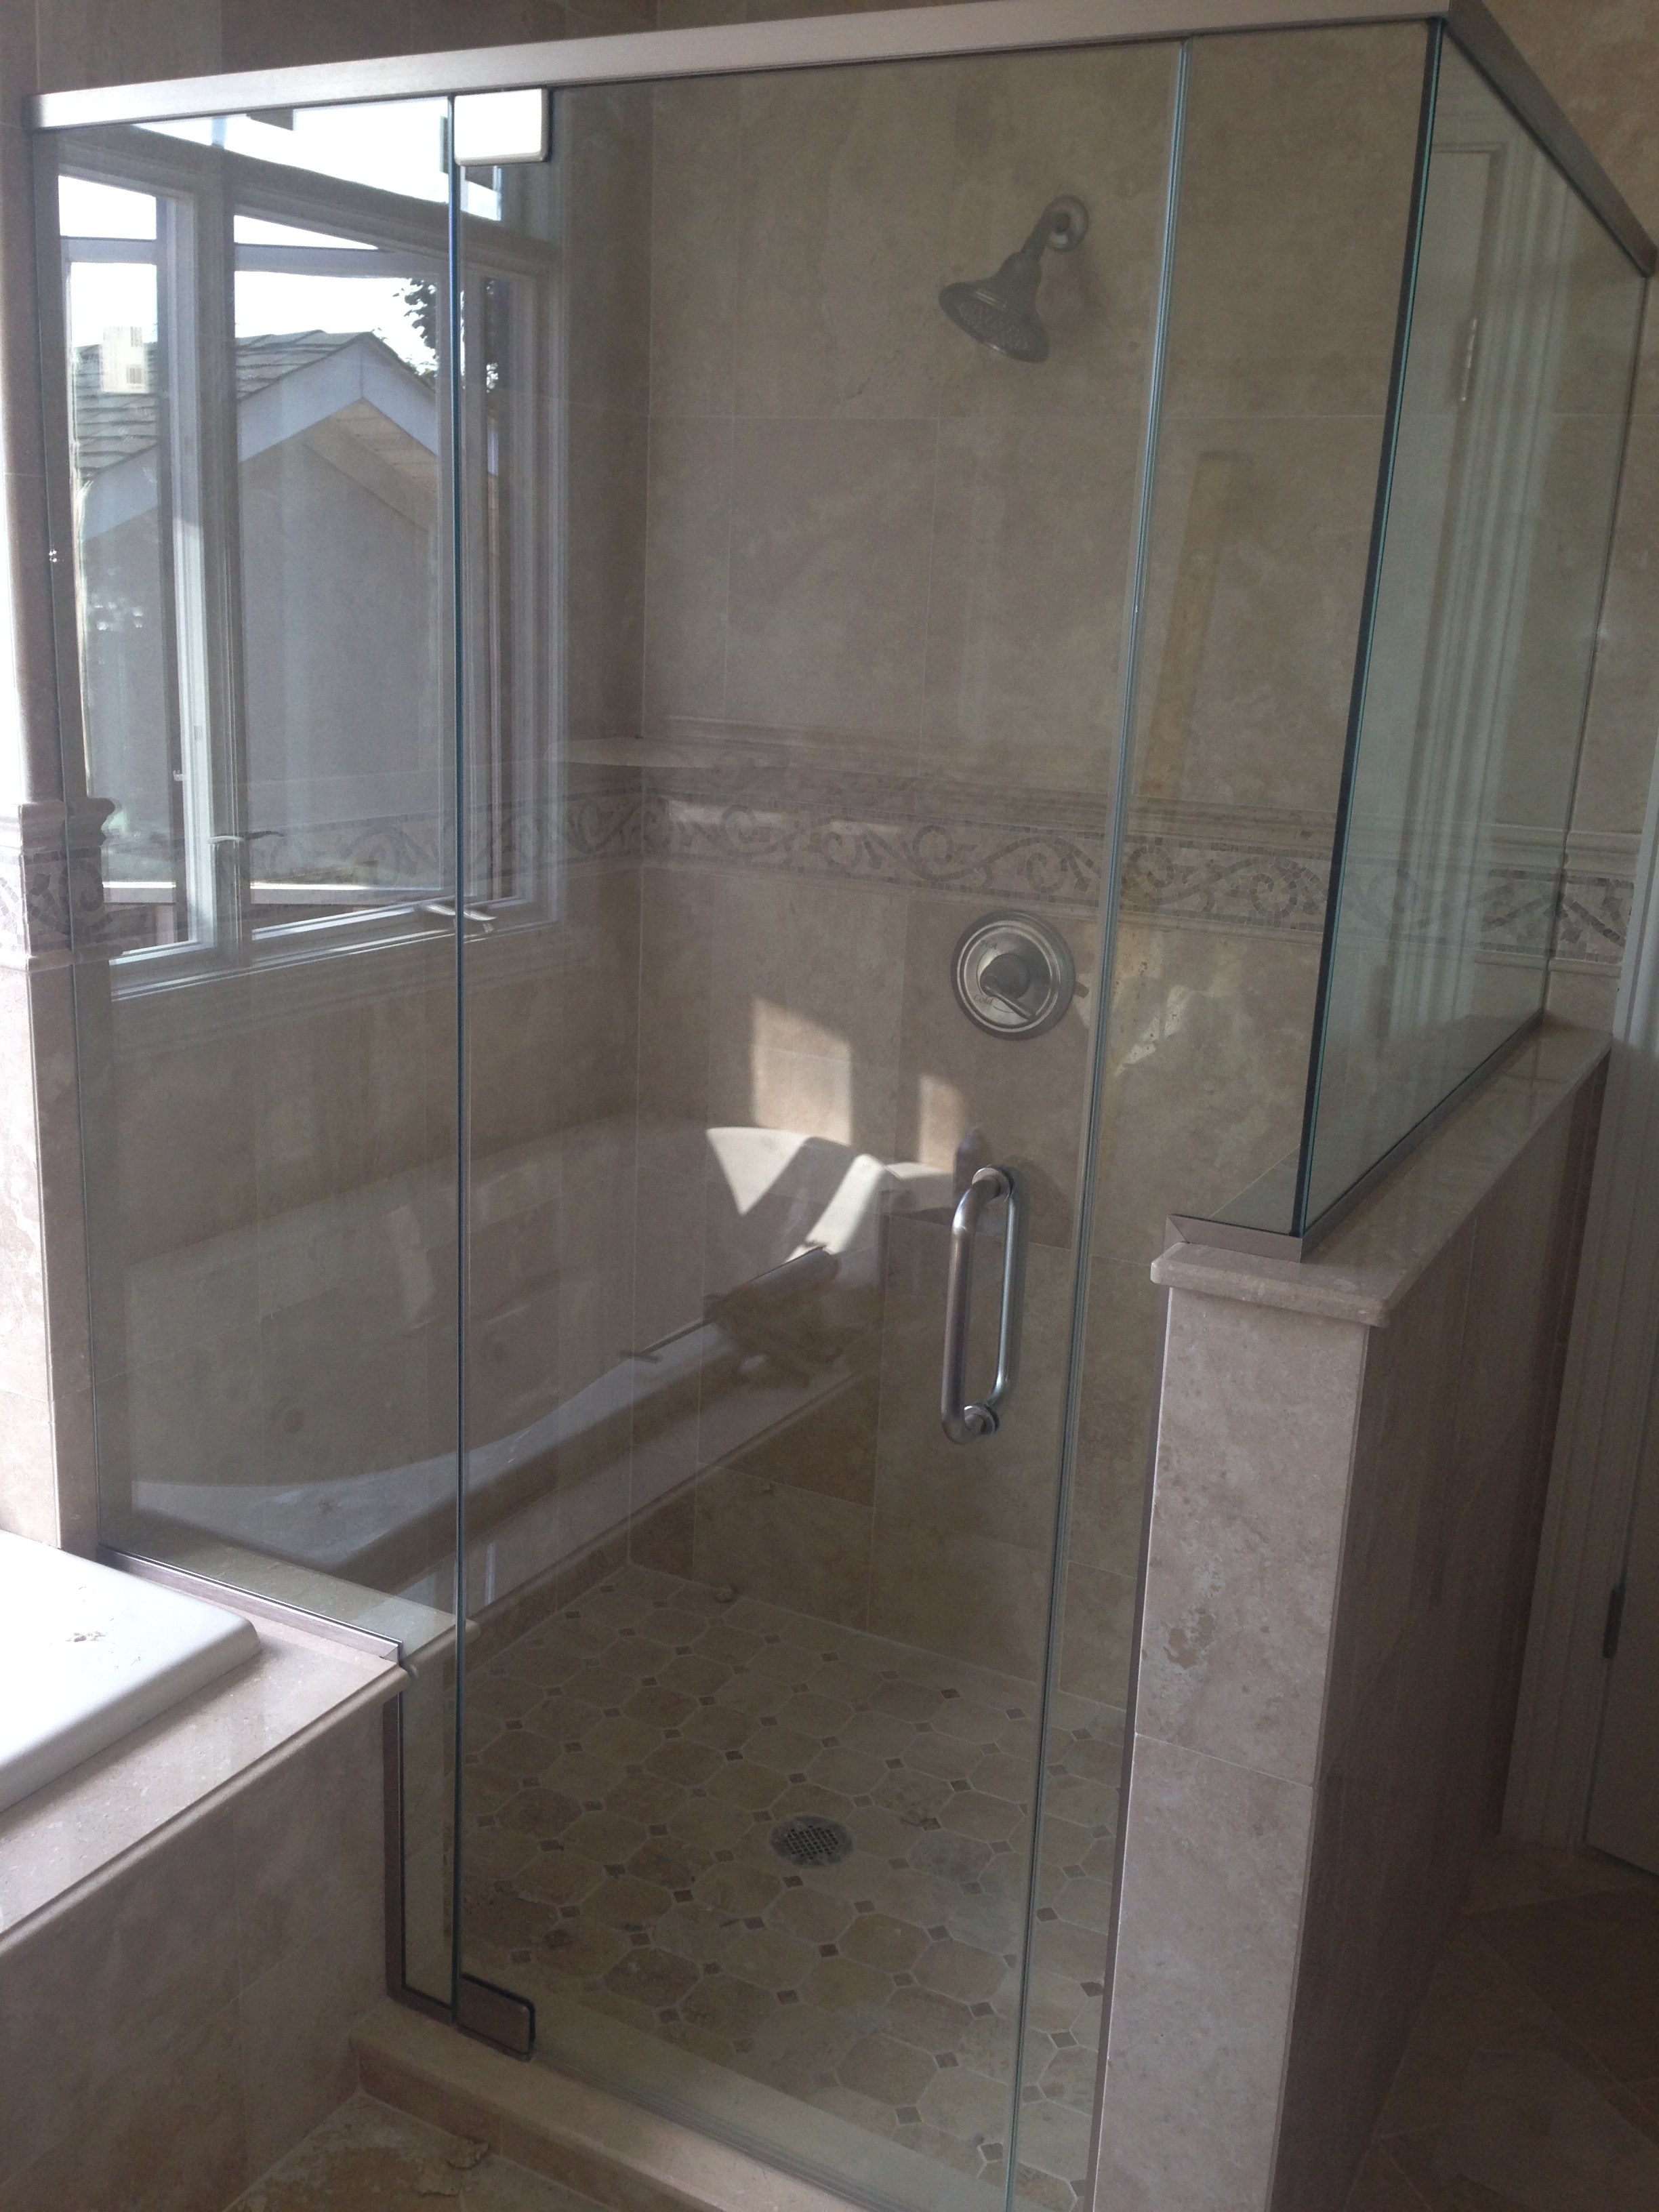 Undefined glass to glass corner enclosure corner frameless enclosure corner frameless shower corner enclosure 8 planetlyrics Image collections